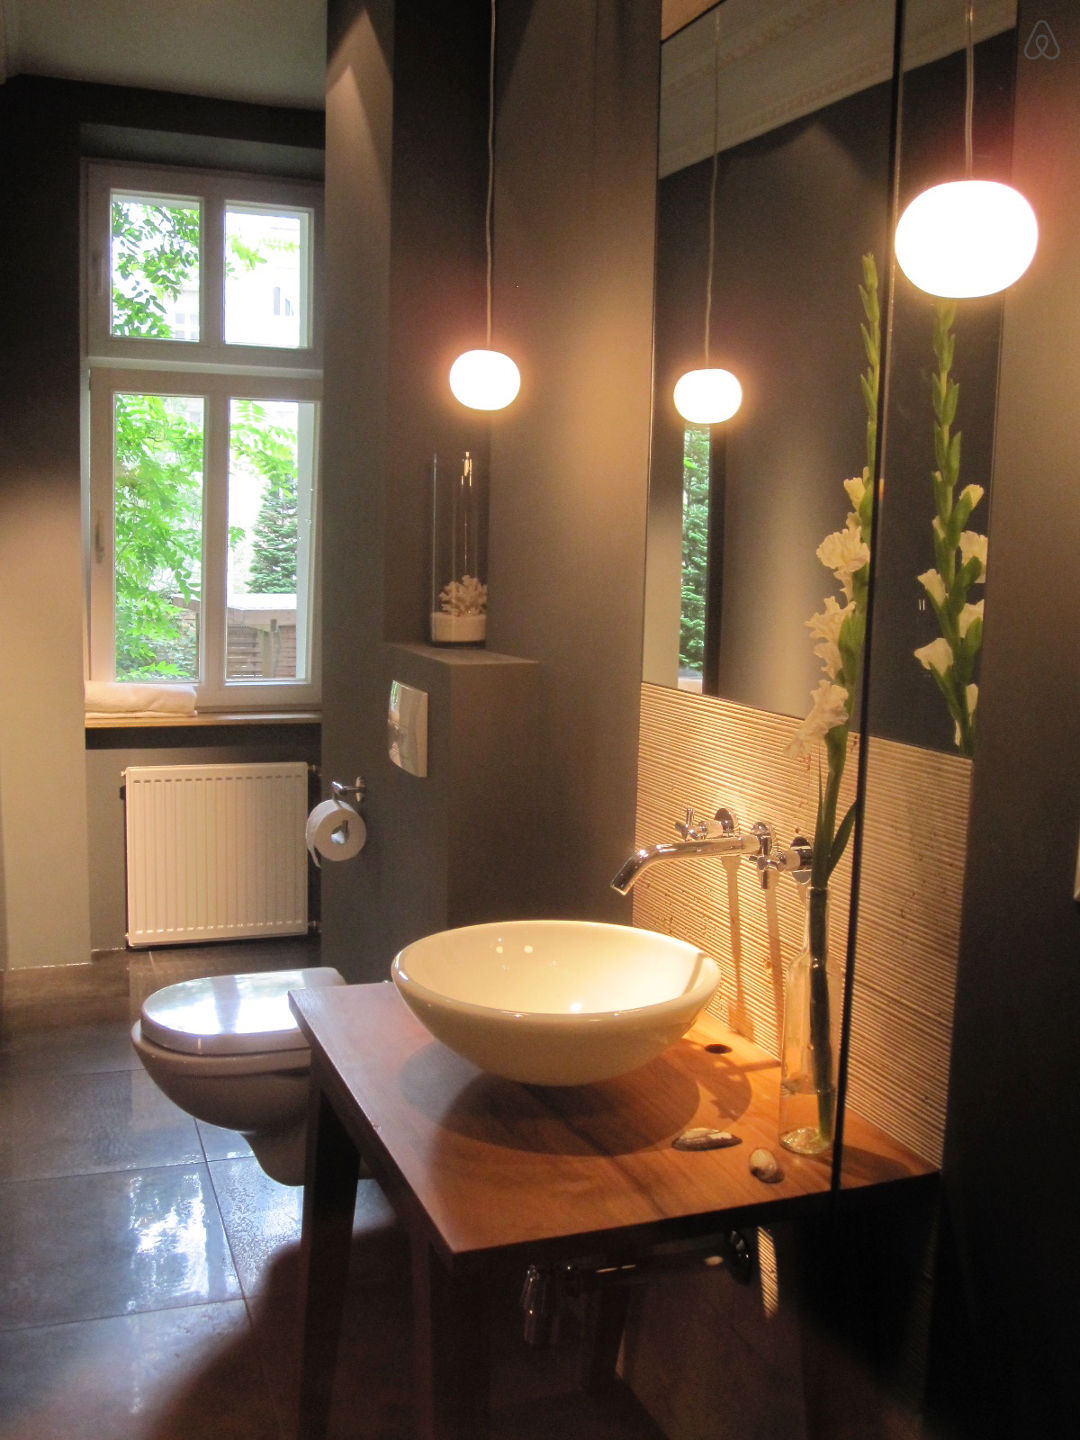 salle de bain contemporaine dans un studio berlin. Black Bedroom Furniture Sets. Home Design Ideas